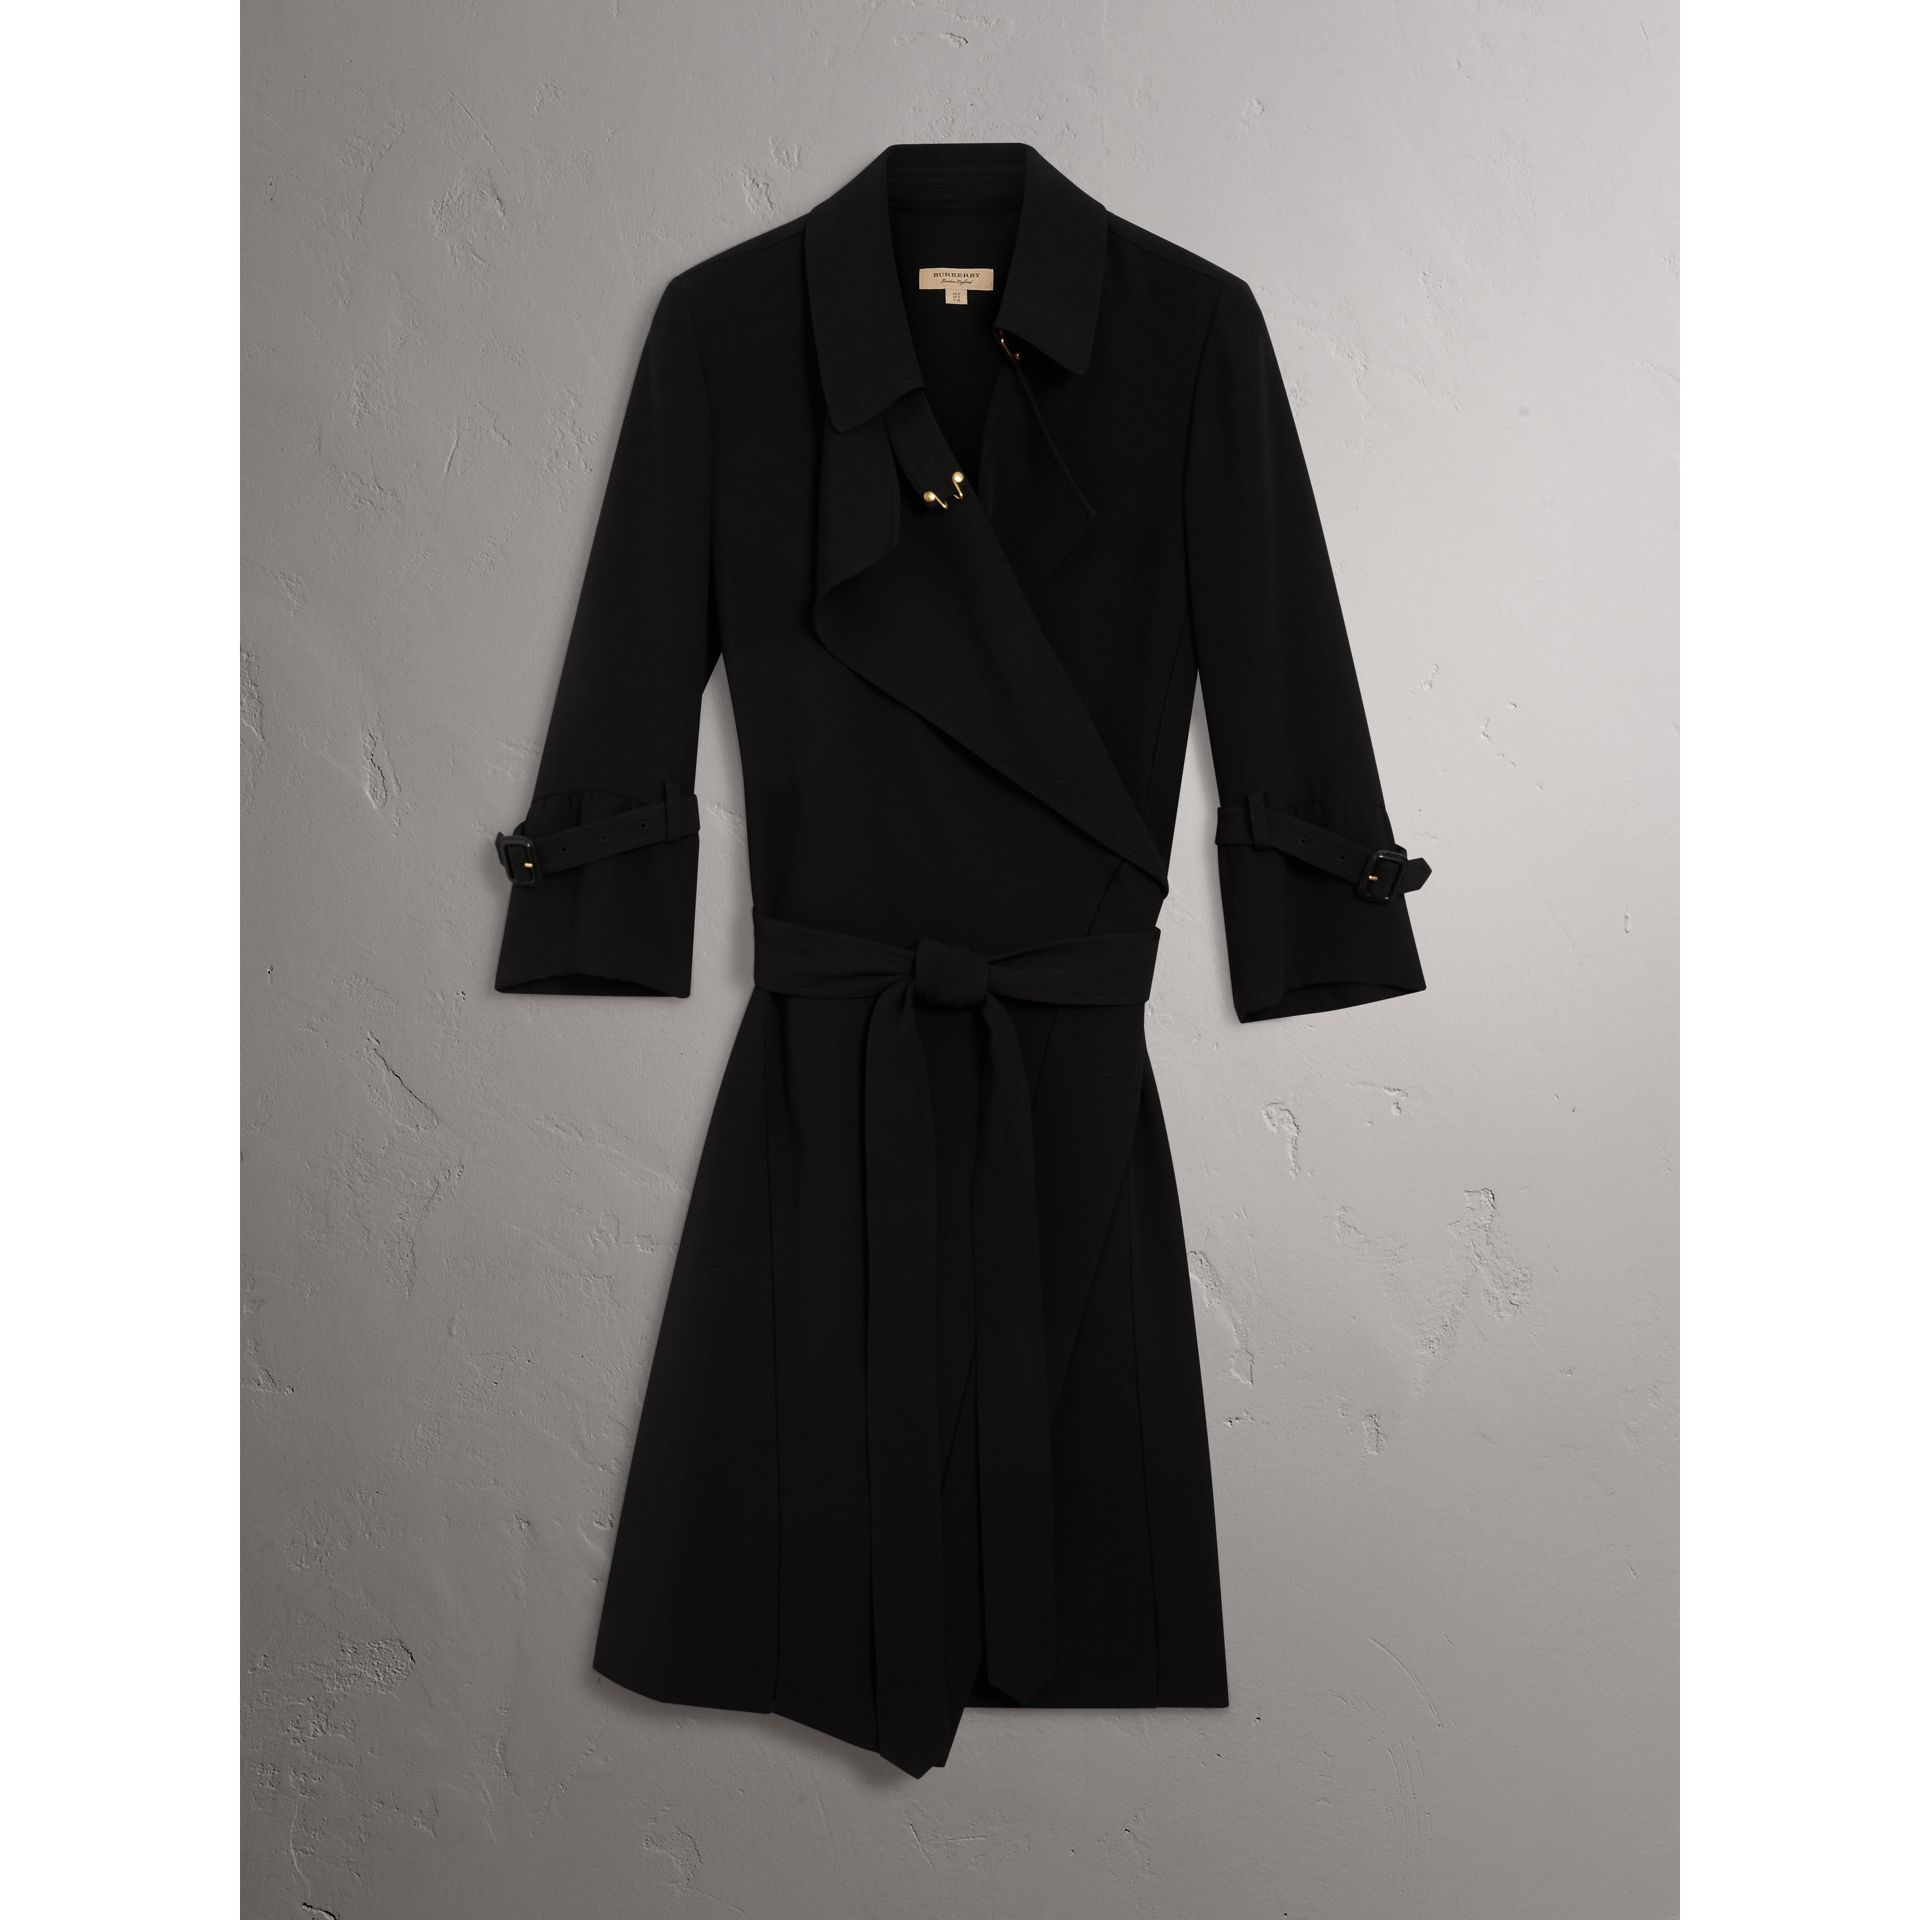 Silk Georgette Trench Wrap Dress in Black - Women | Burberry - gallery image 3